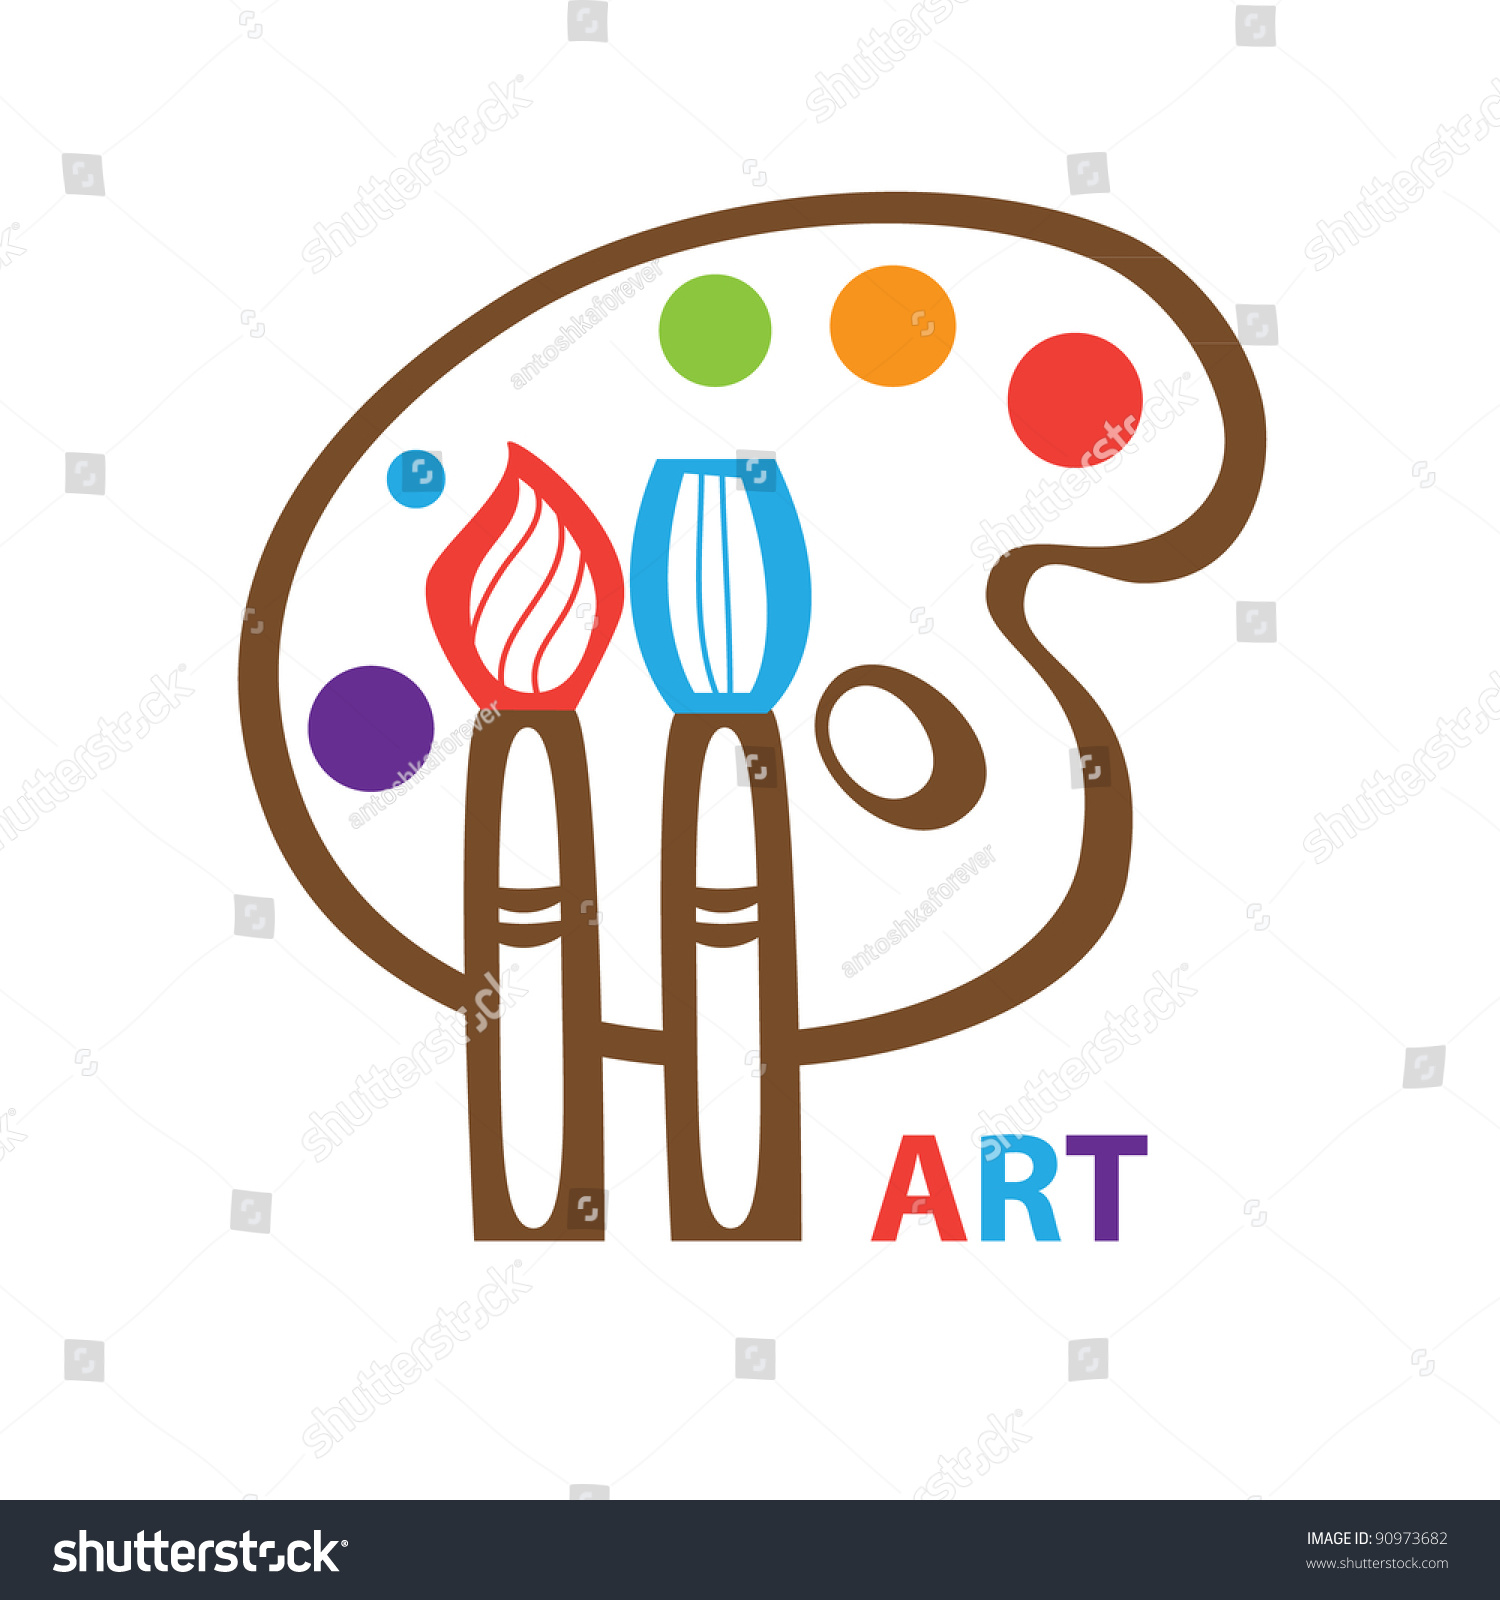 Template Icon Art Symbol Art Vector Stock Vector 90973682 ...